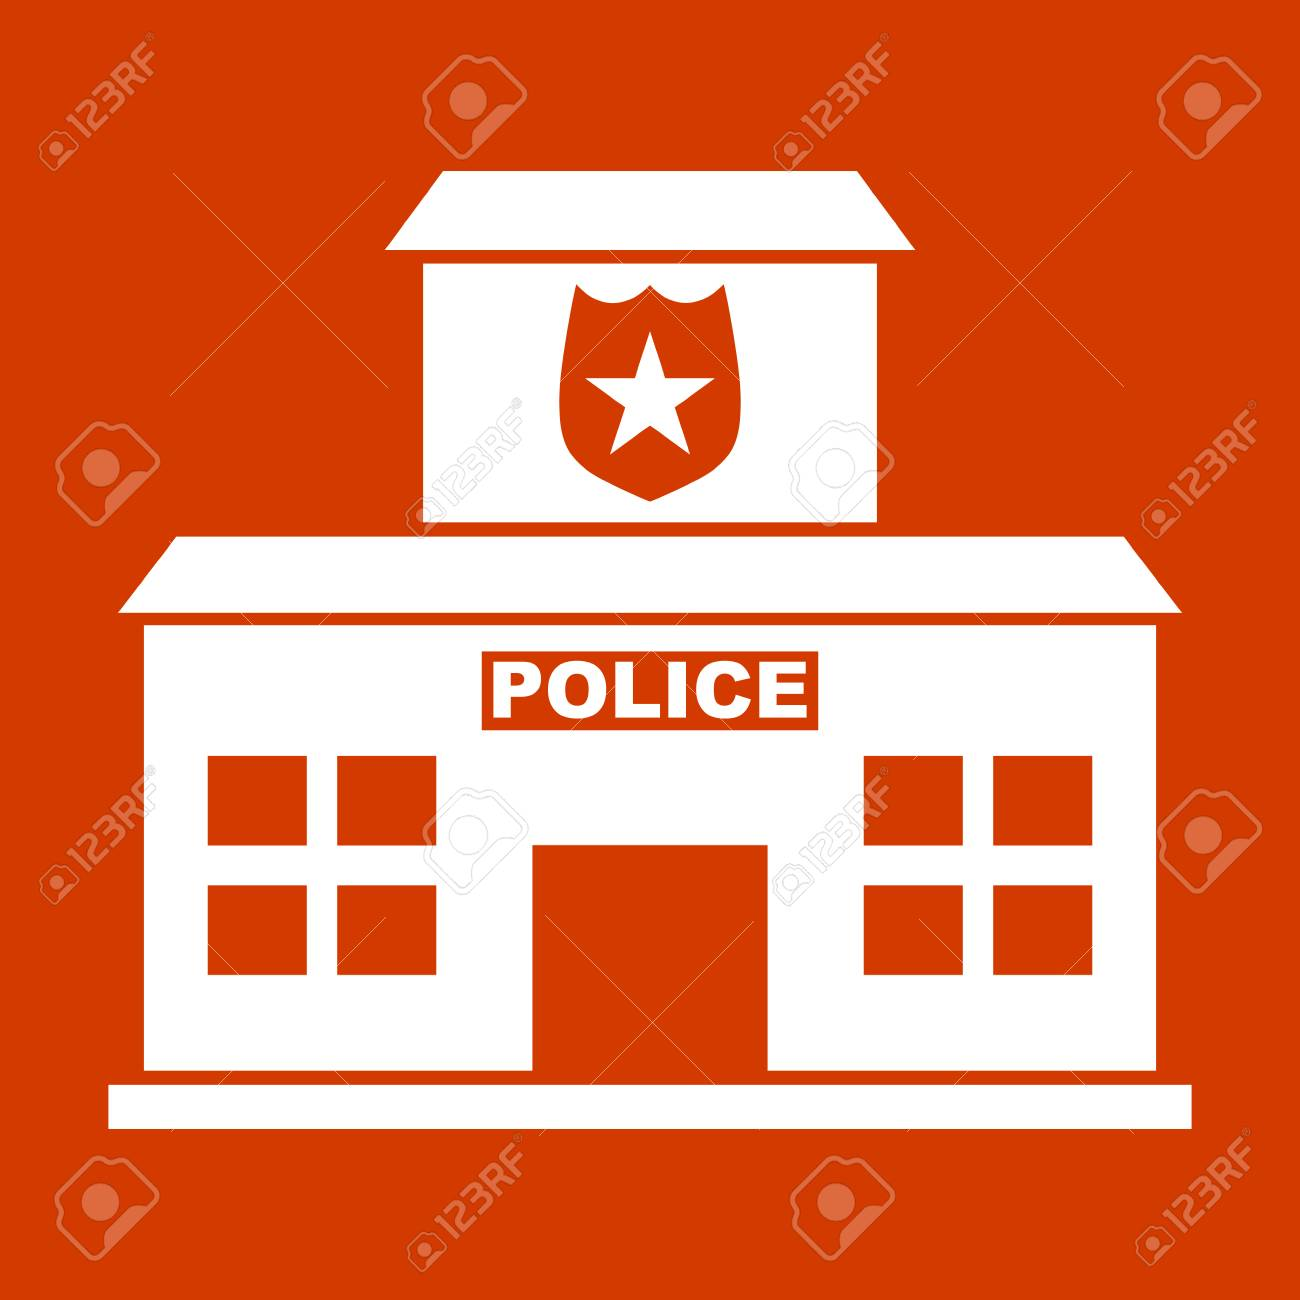 Police Station Icons Royalty Free Cliparts Vectors And Stock